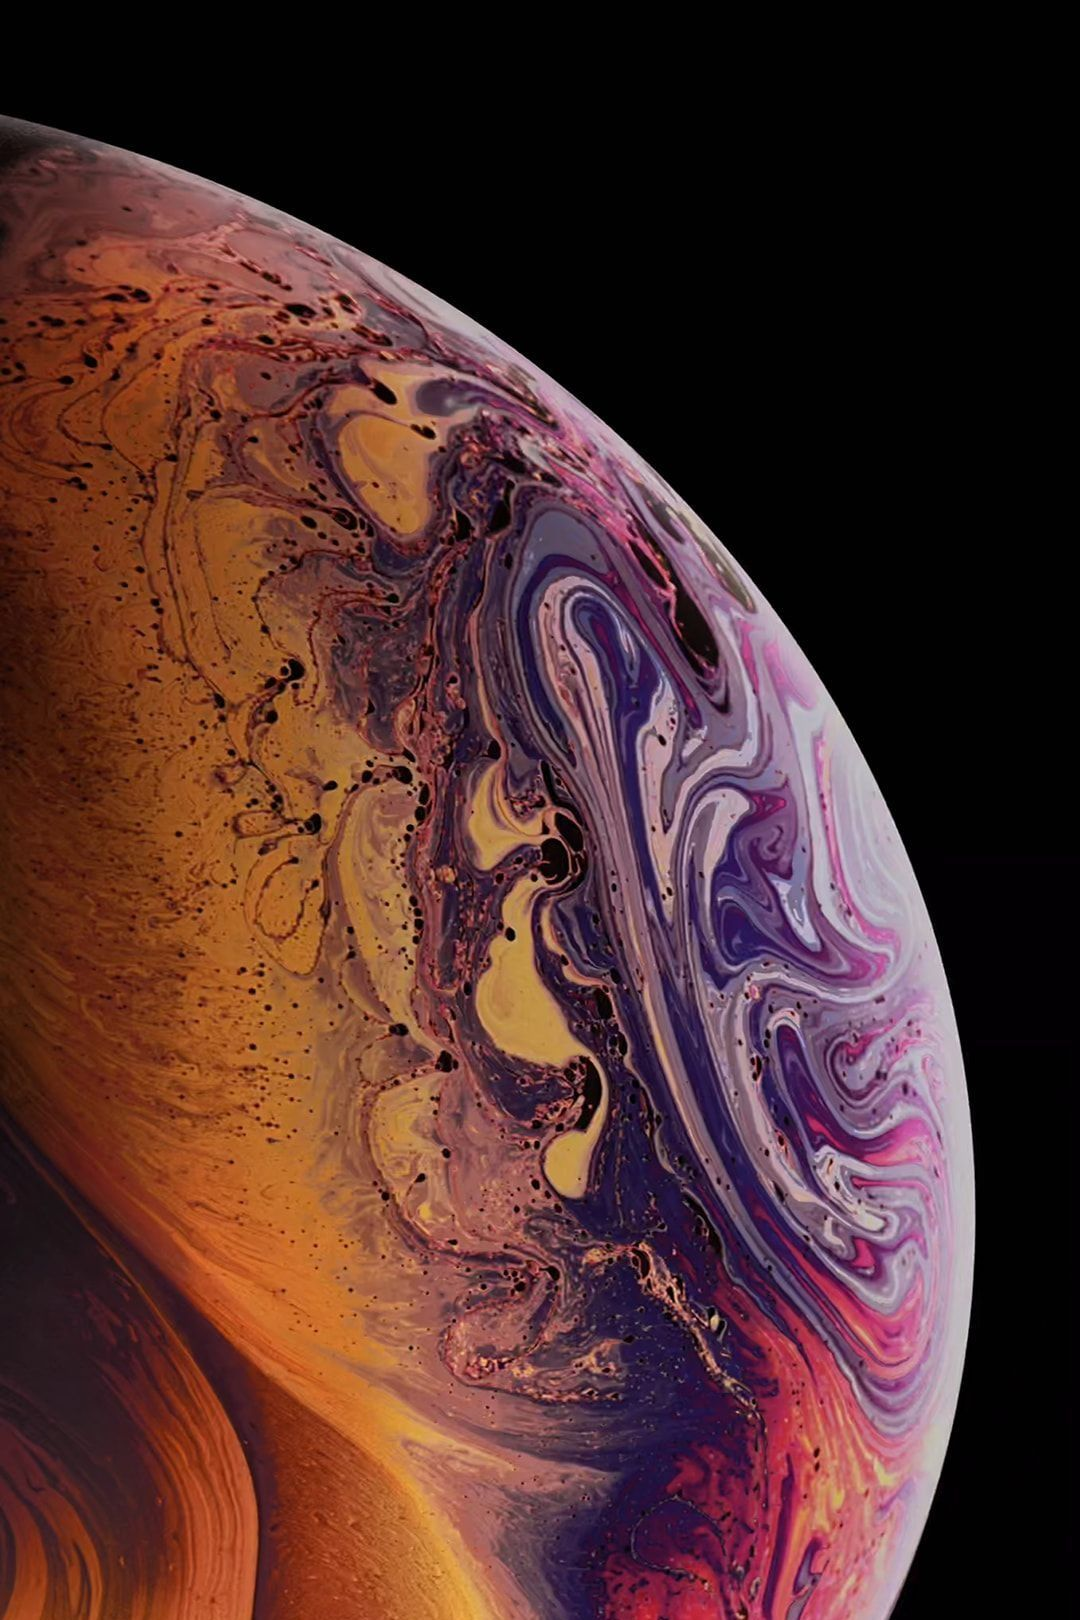 Iphone 11 Wallpaper Free Download In 2020 Iphone Wallpaper Ios Apple Wallpaper Iphone Apple Wallpaper